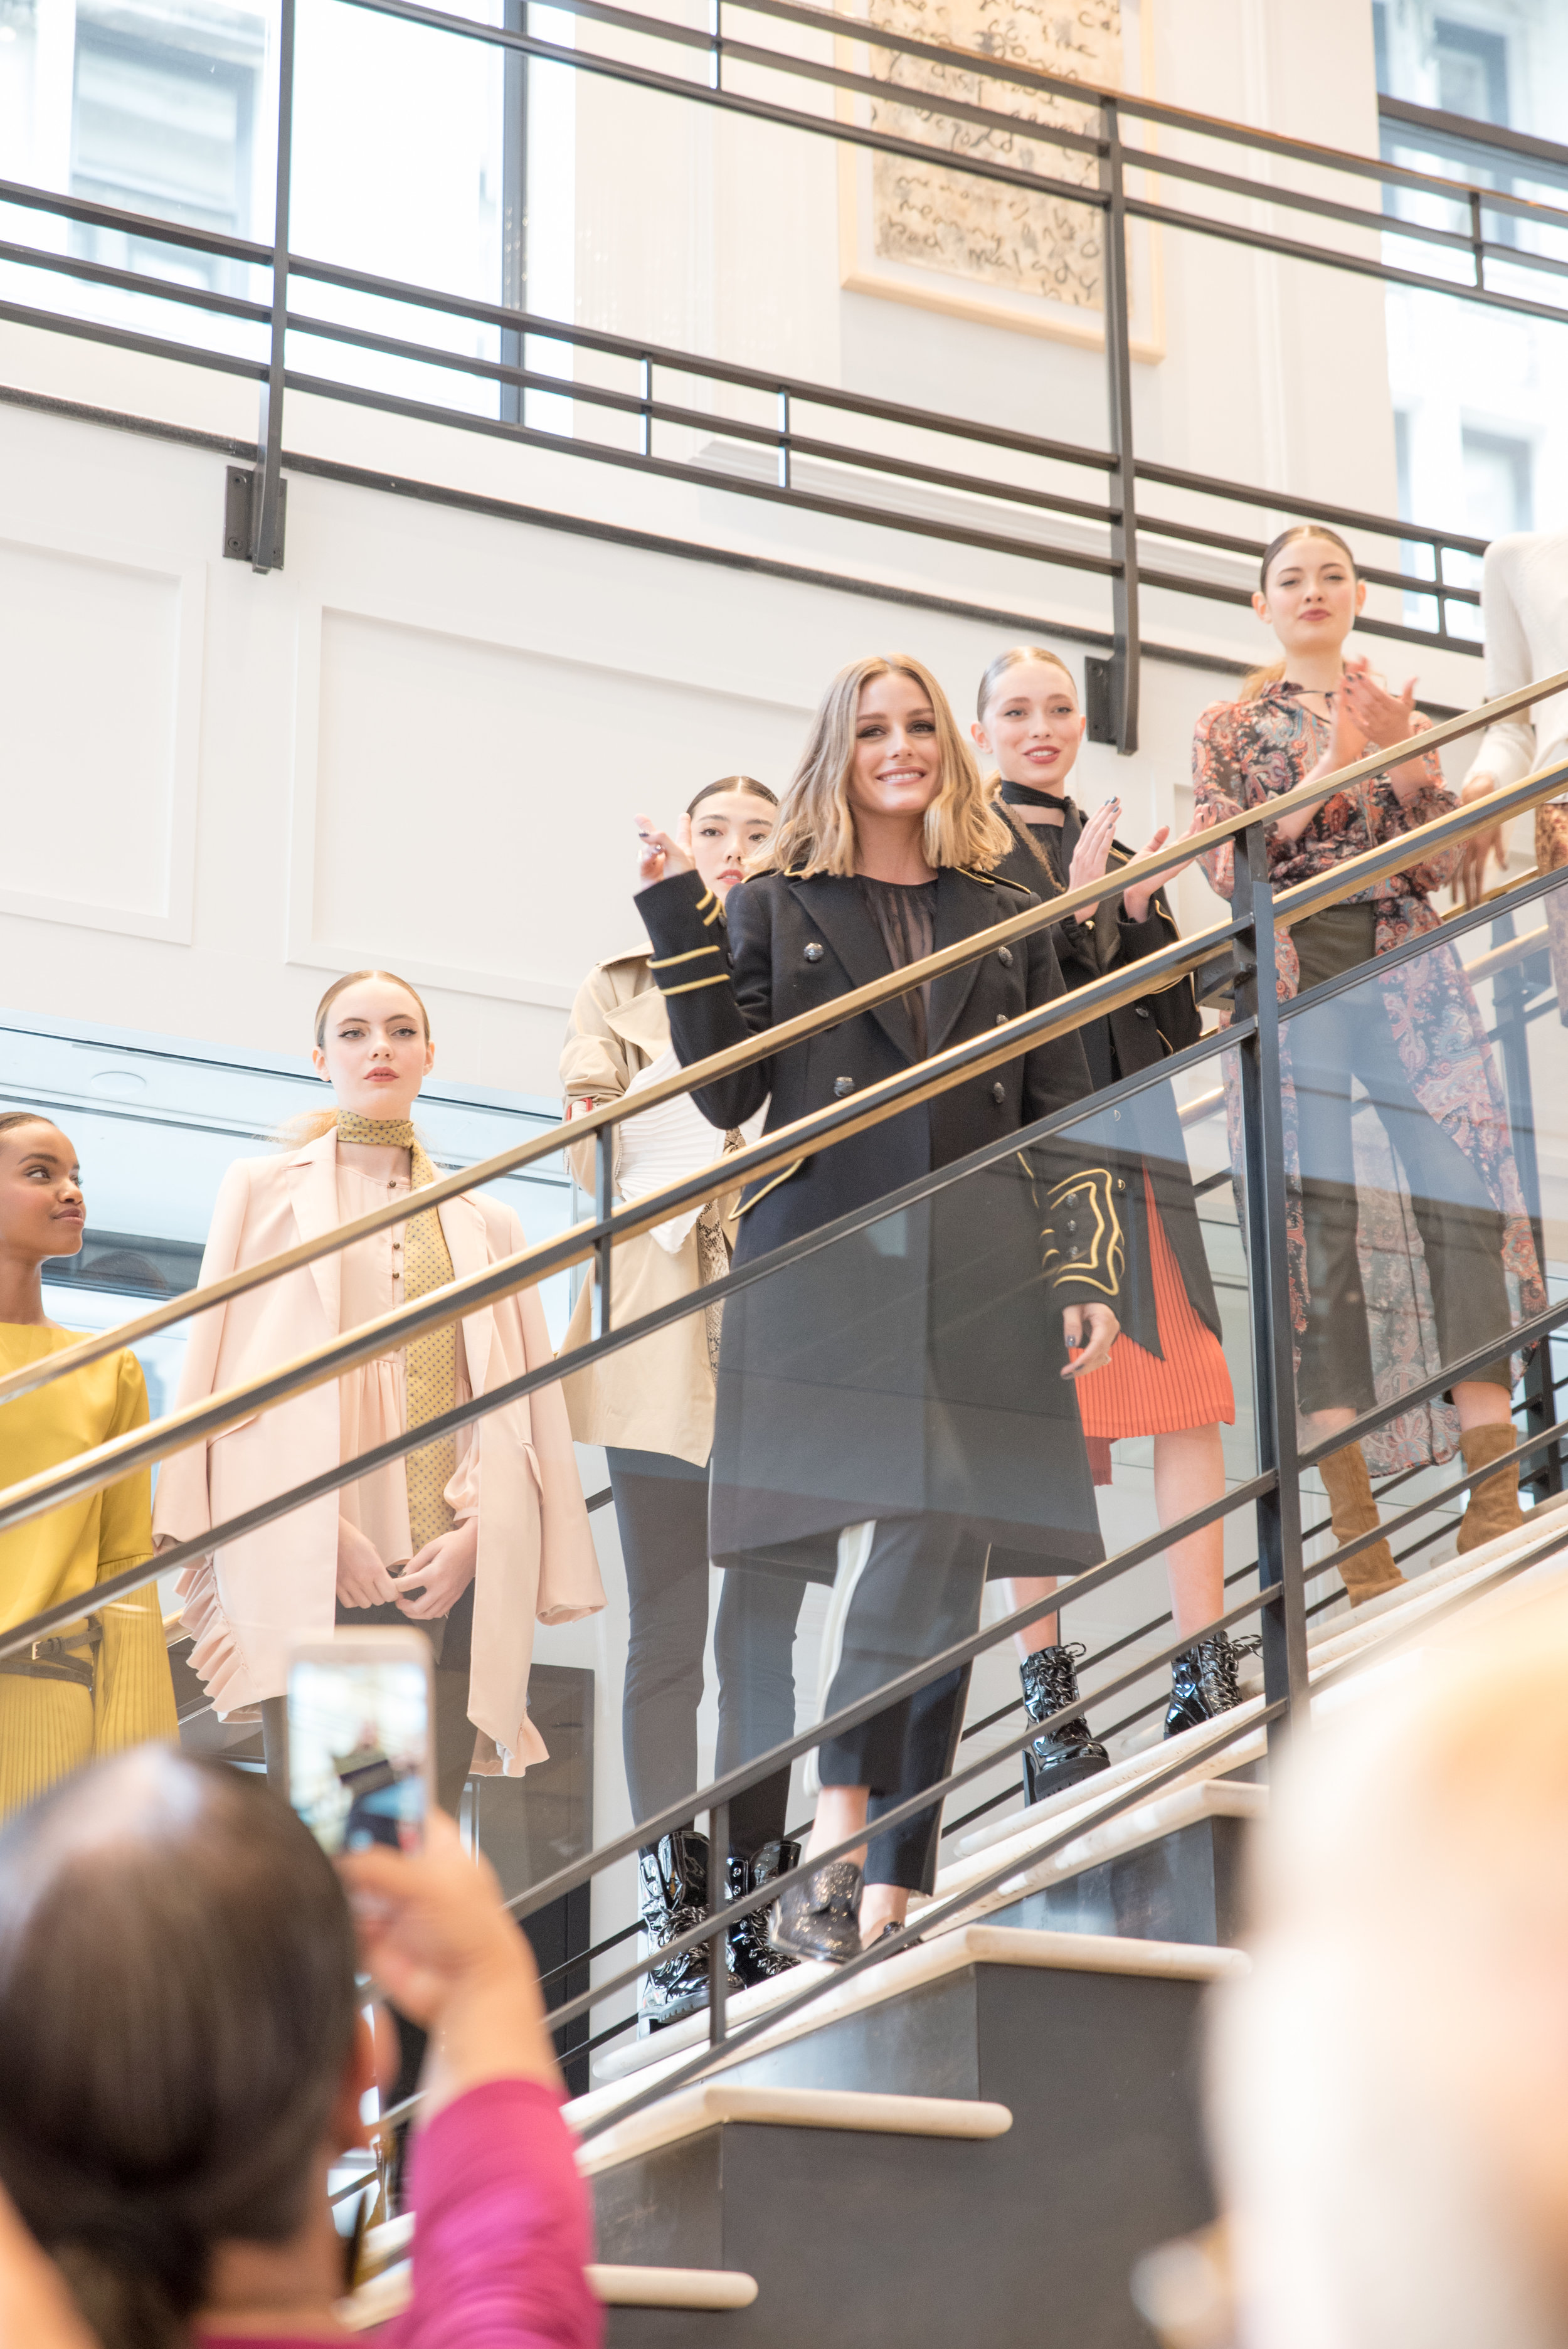 Designer and models showcasing the collection